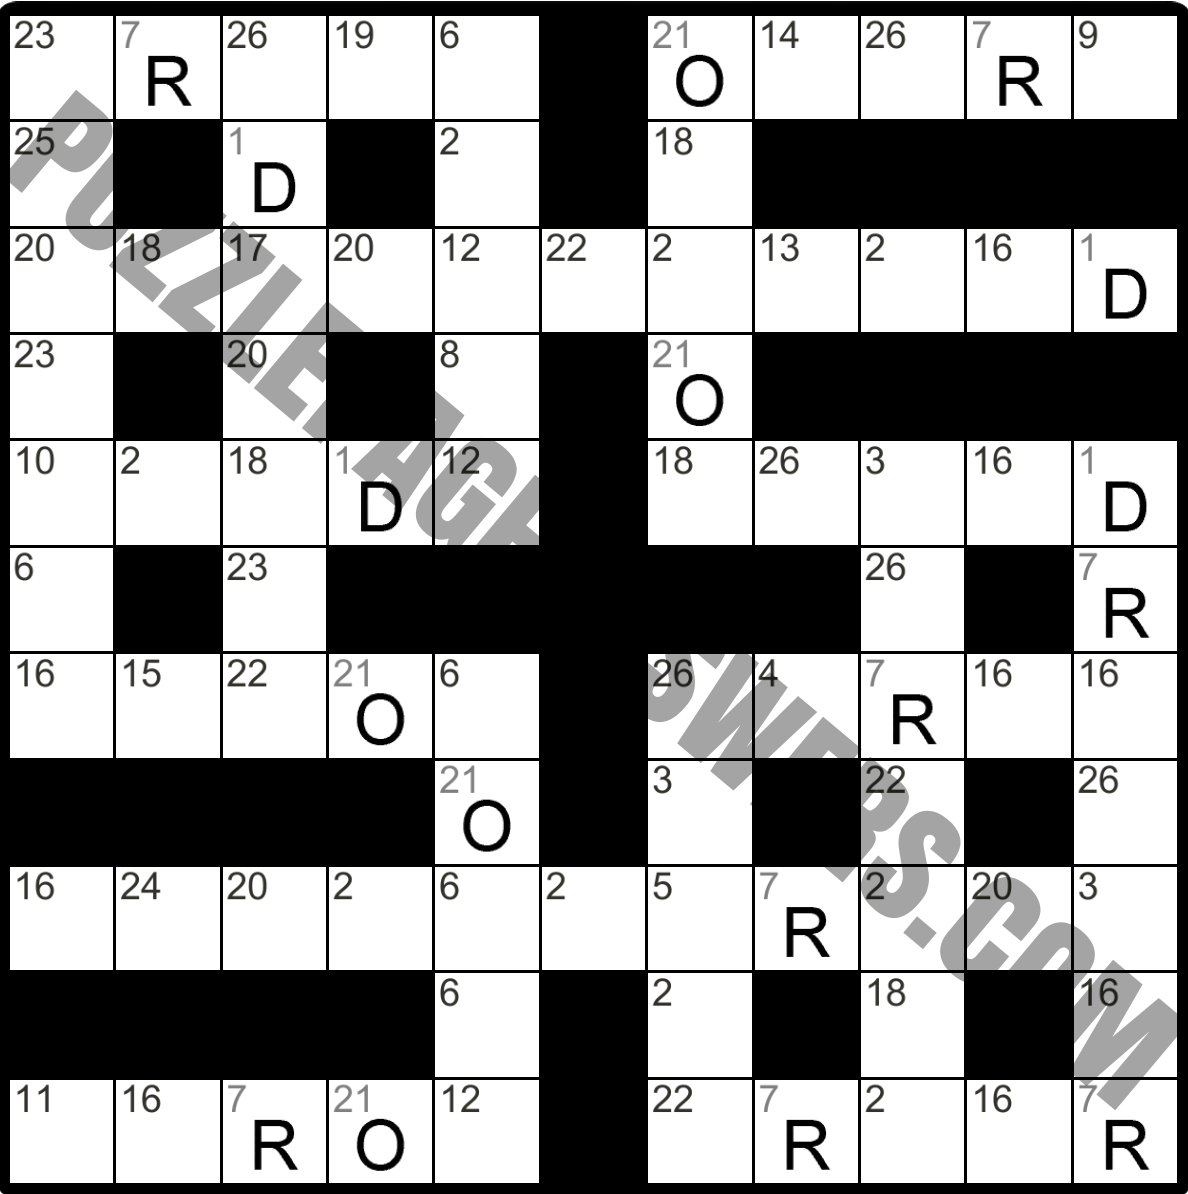 Puzzle Page Codeword January 10 2021 Answers Puzzlepageanswers Com